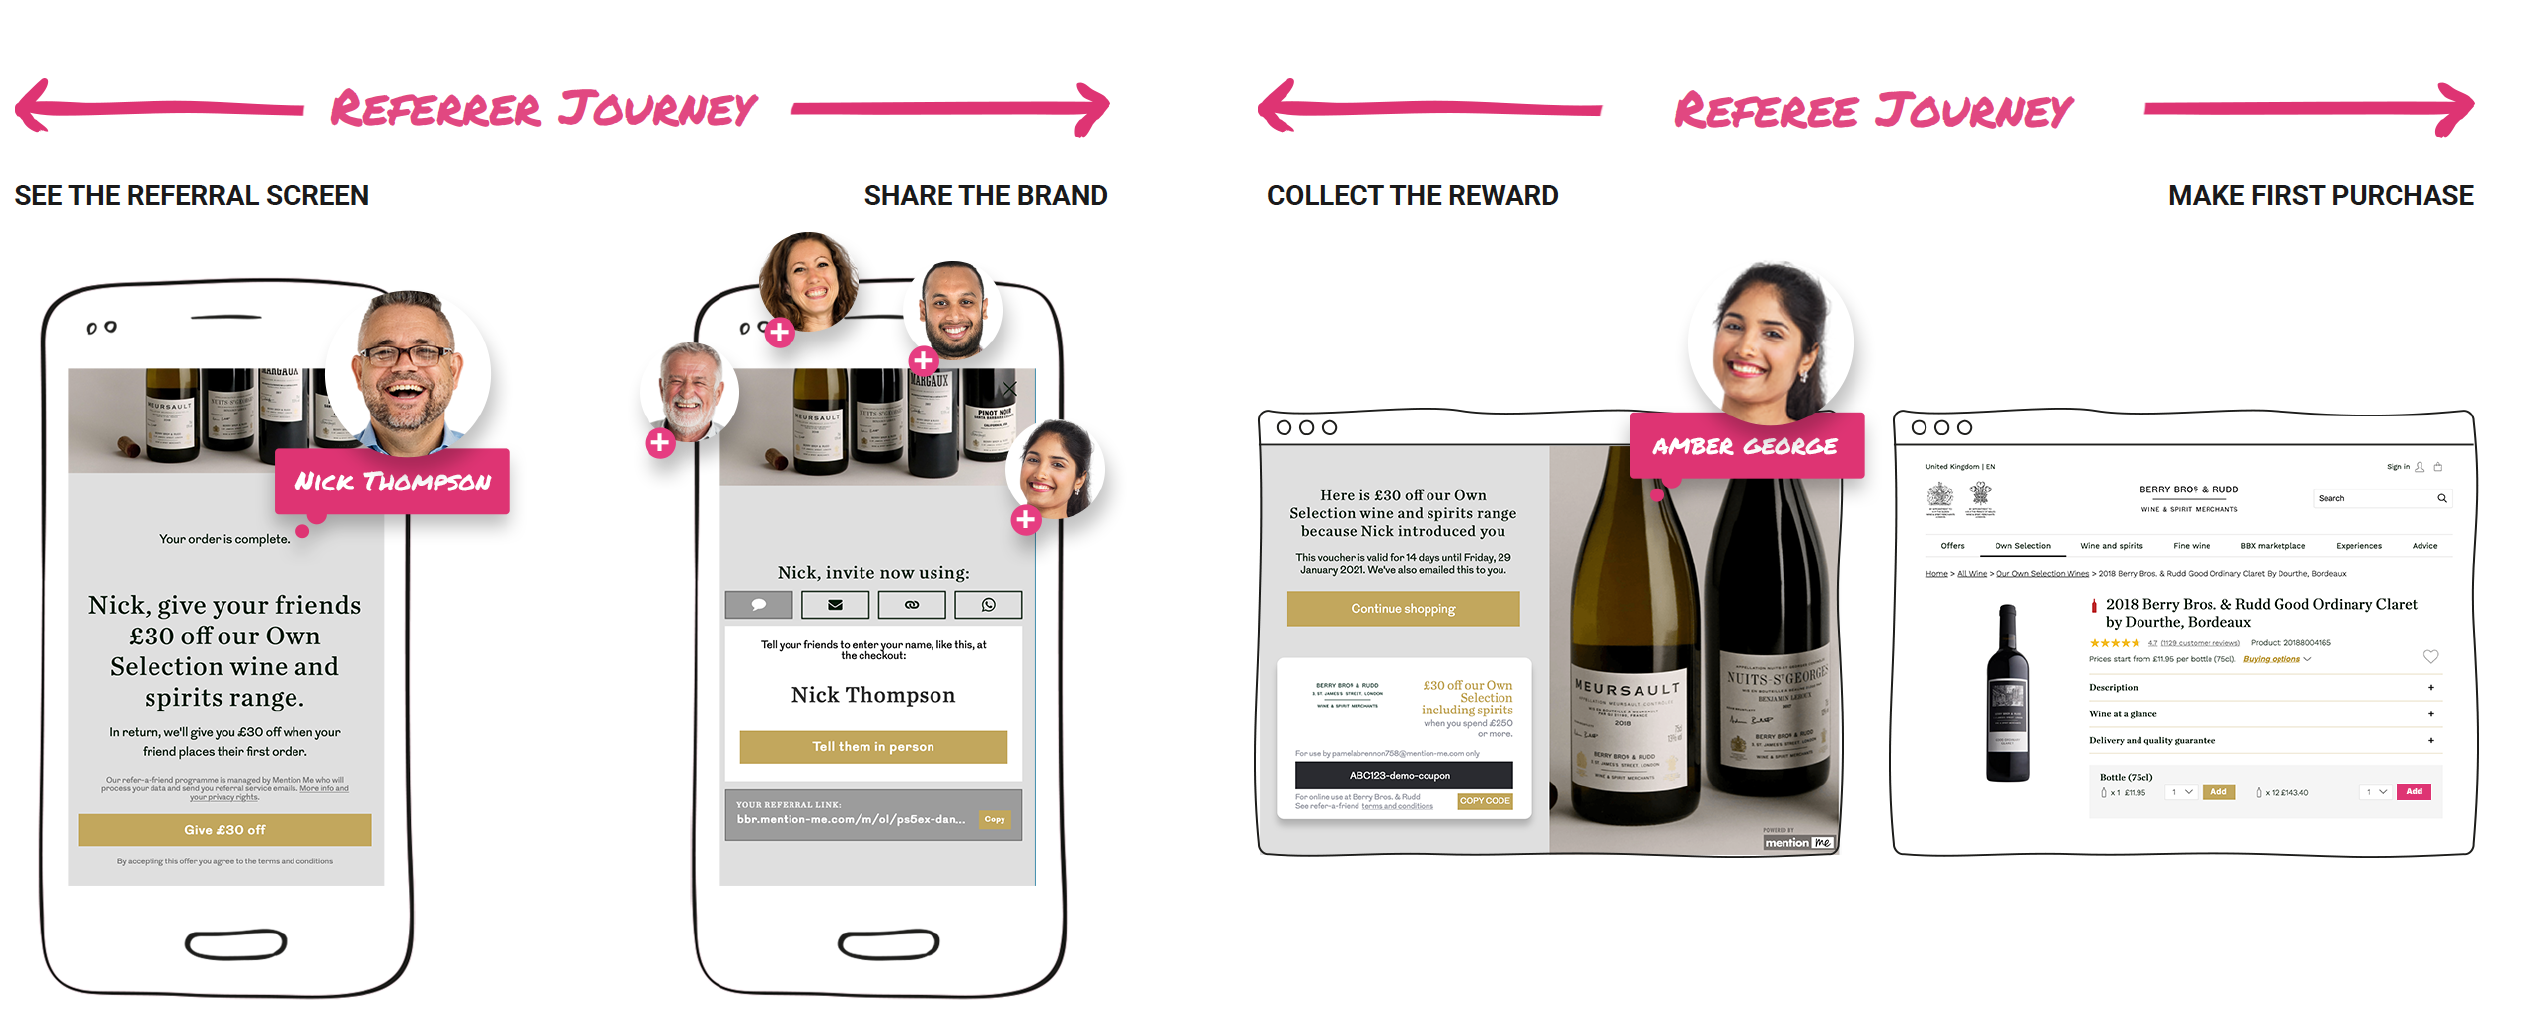 The referral customer journey